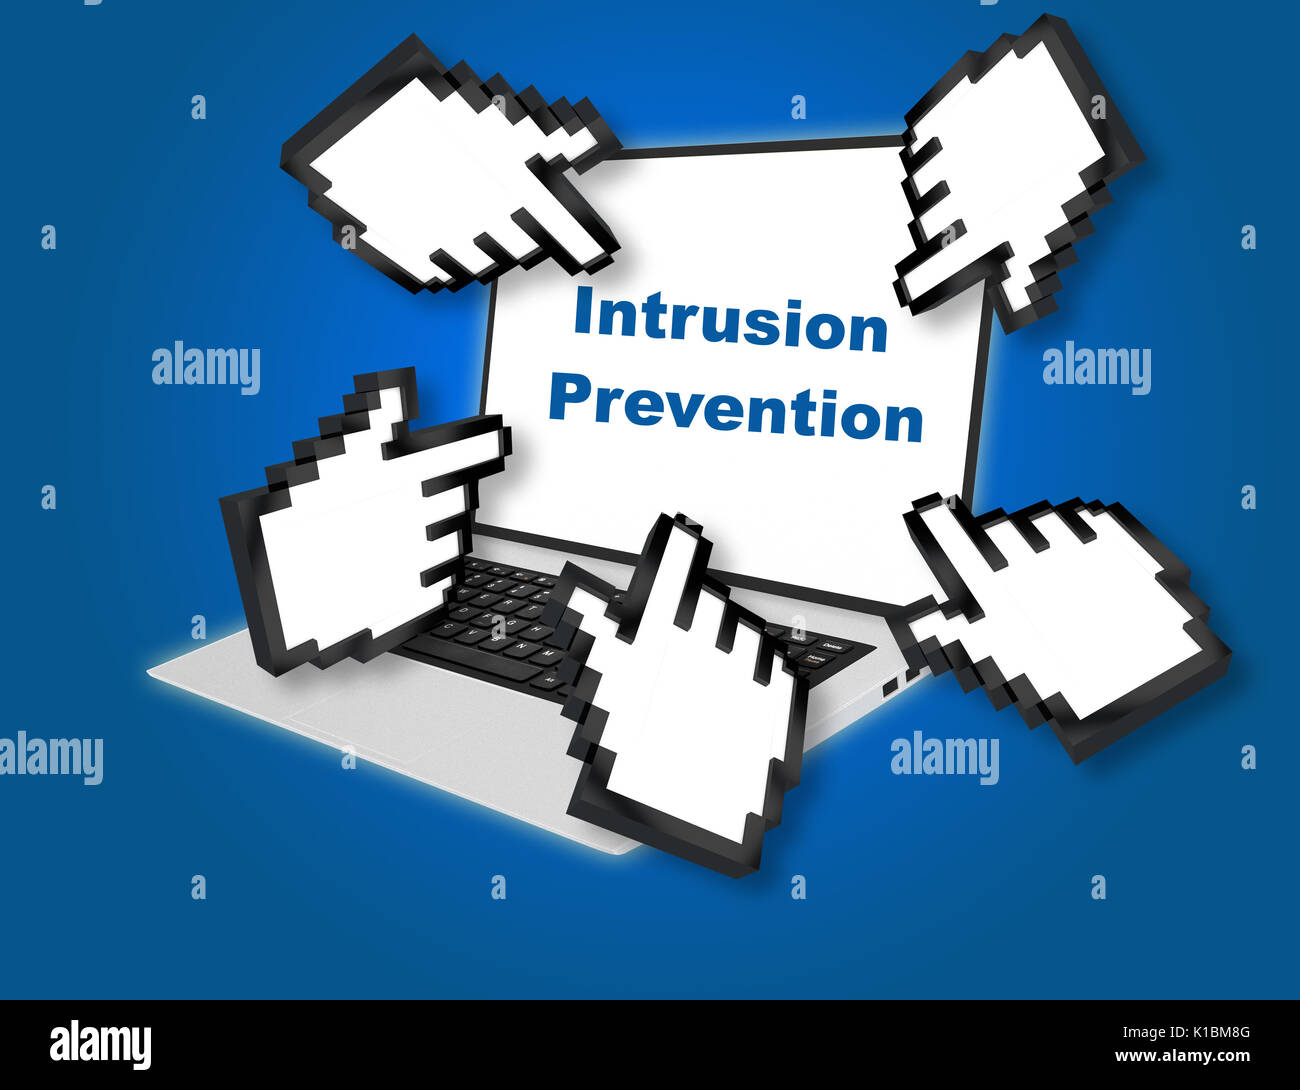 Render illustration of Intrusion Prevention concept with pointing hand icons pointing at the laptop screen from all sides. - Stock Image